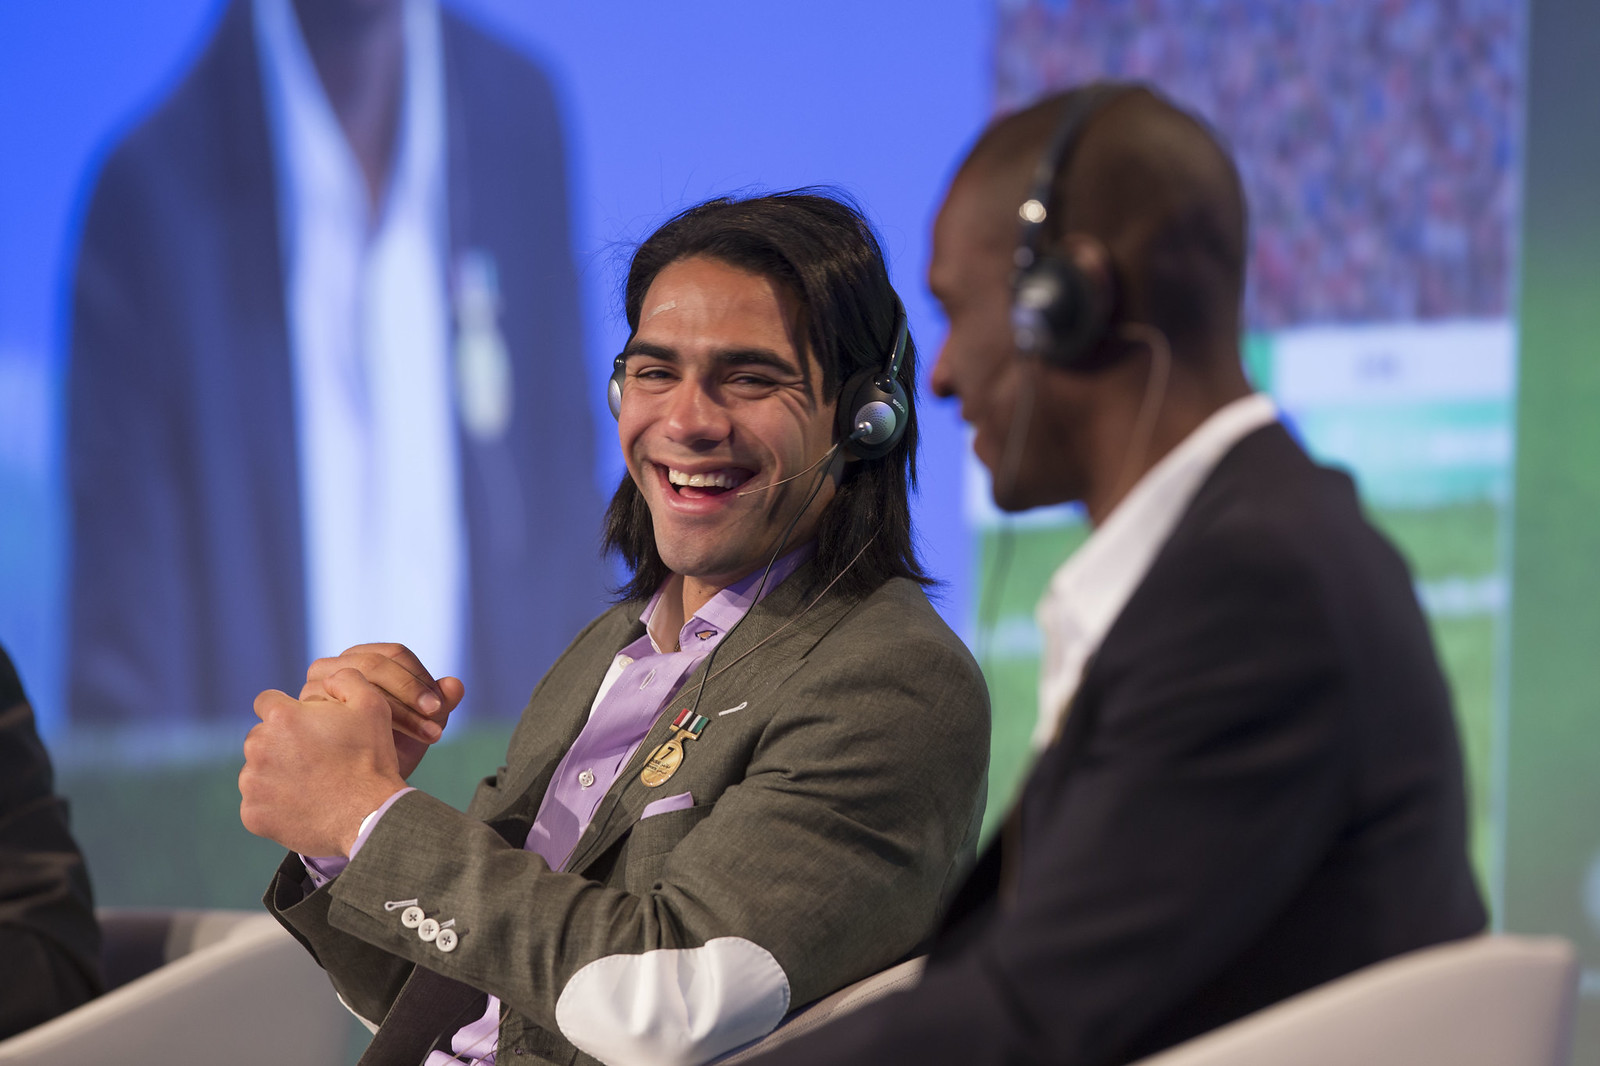 Radamel Falcao and Eric Abidal